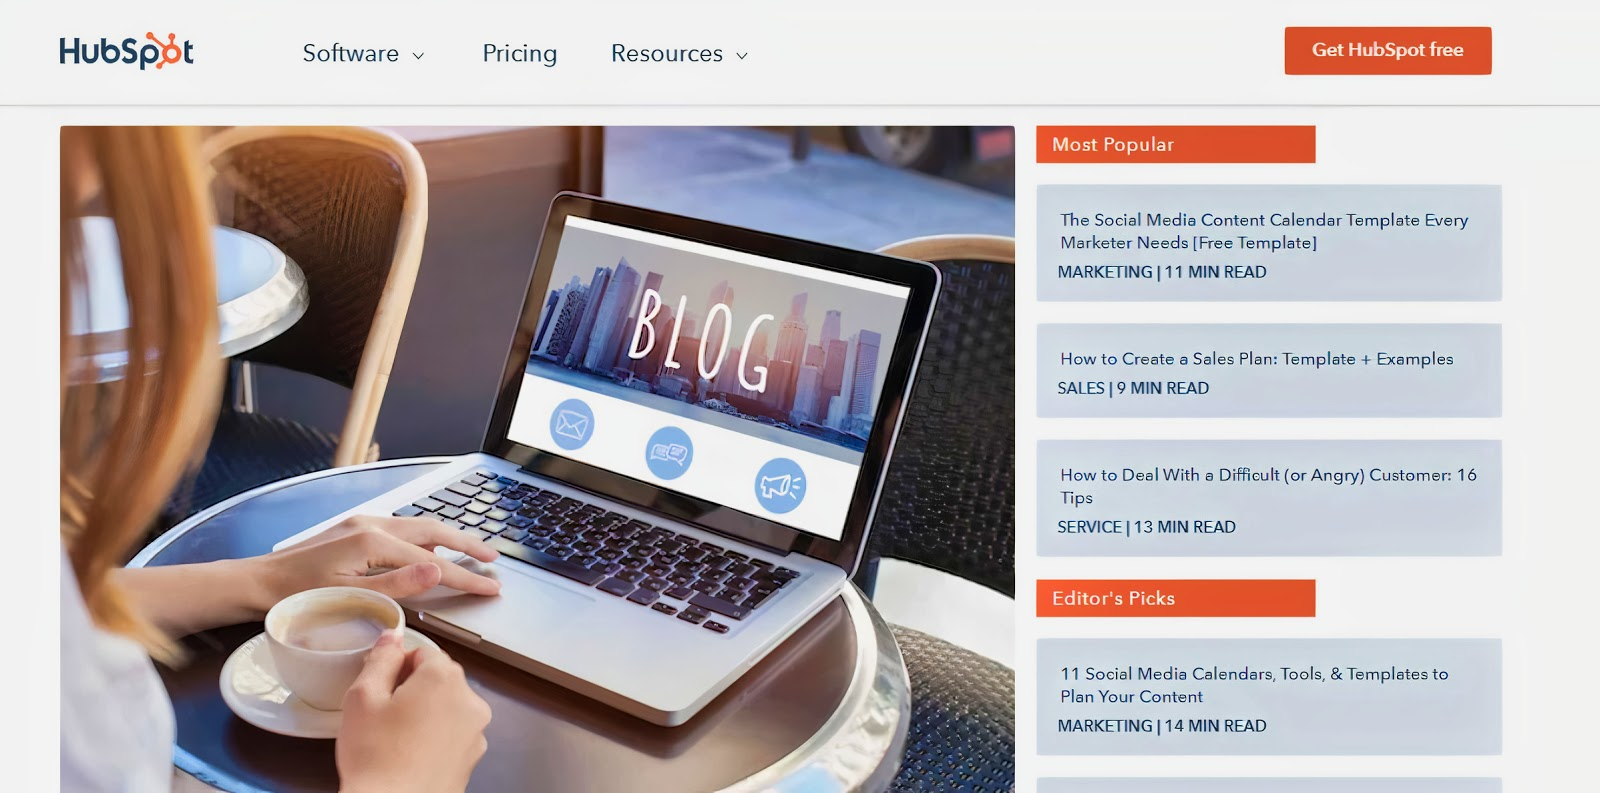 A screenshot of a HubSpot webpage, showing someone looking at their laptop which shows the word 'BLOG'